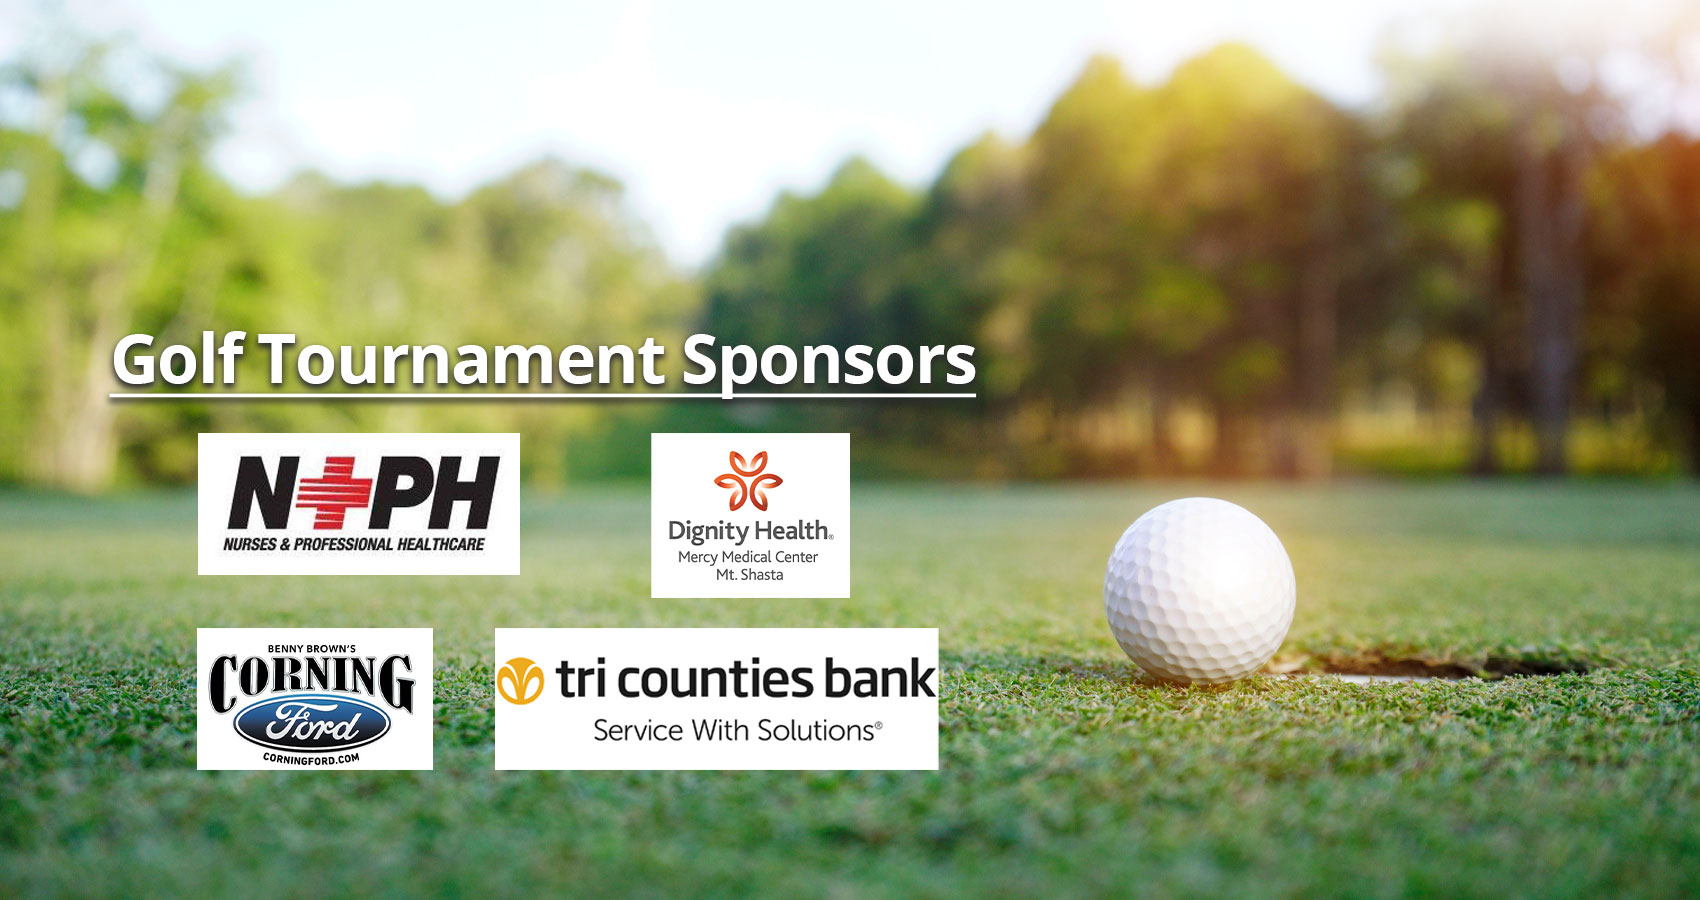 Tournament Sponsors     Golf Prize Sponsor  NPH - logo attached     Double Eagle Sponsor  Tri counties bank  – logo attached     Sponsor  Packway Materials, Inc.